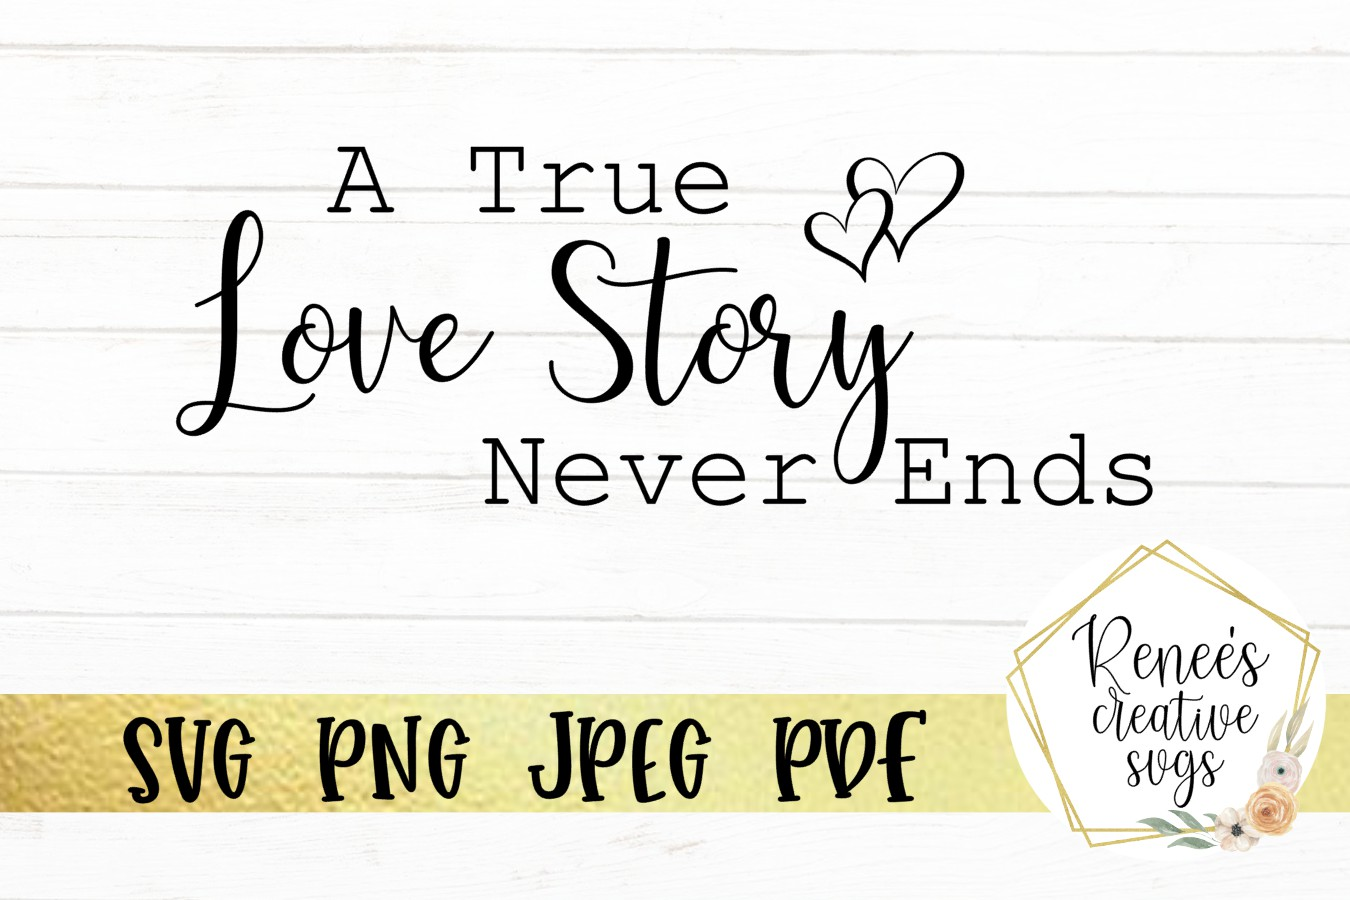 A true love story never ends Wedding Quotes   SVG Cut File example image 2